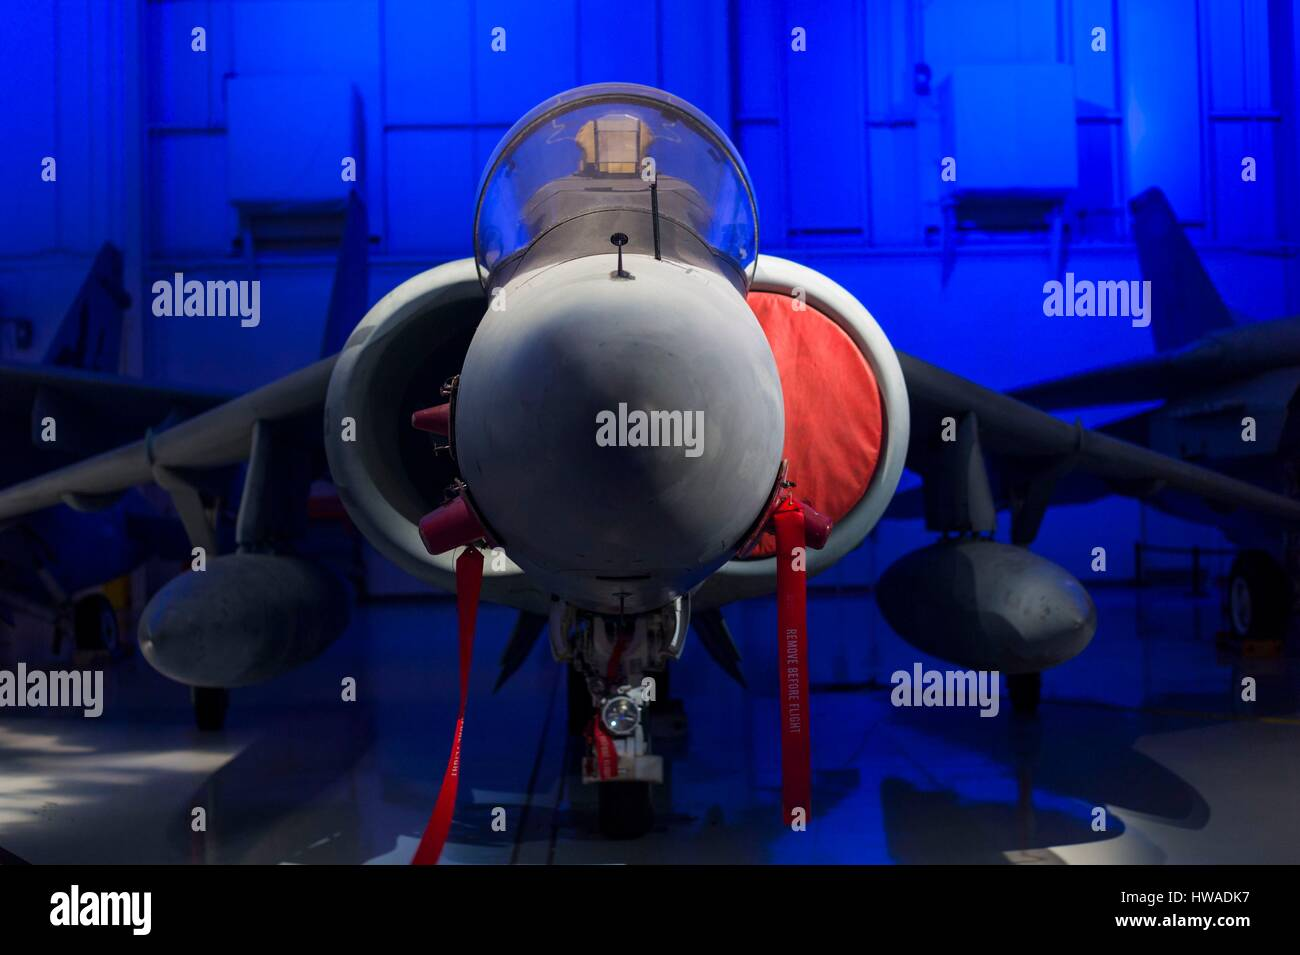 United States, North Carolina, Charlotte, Carolina's Aviation Museum, interior, Harrier VTOL jet - Stock Image